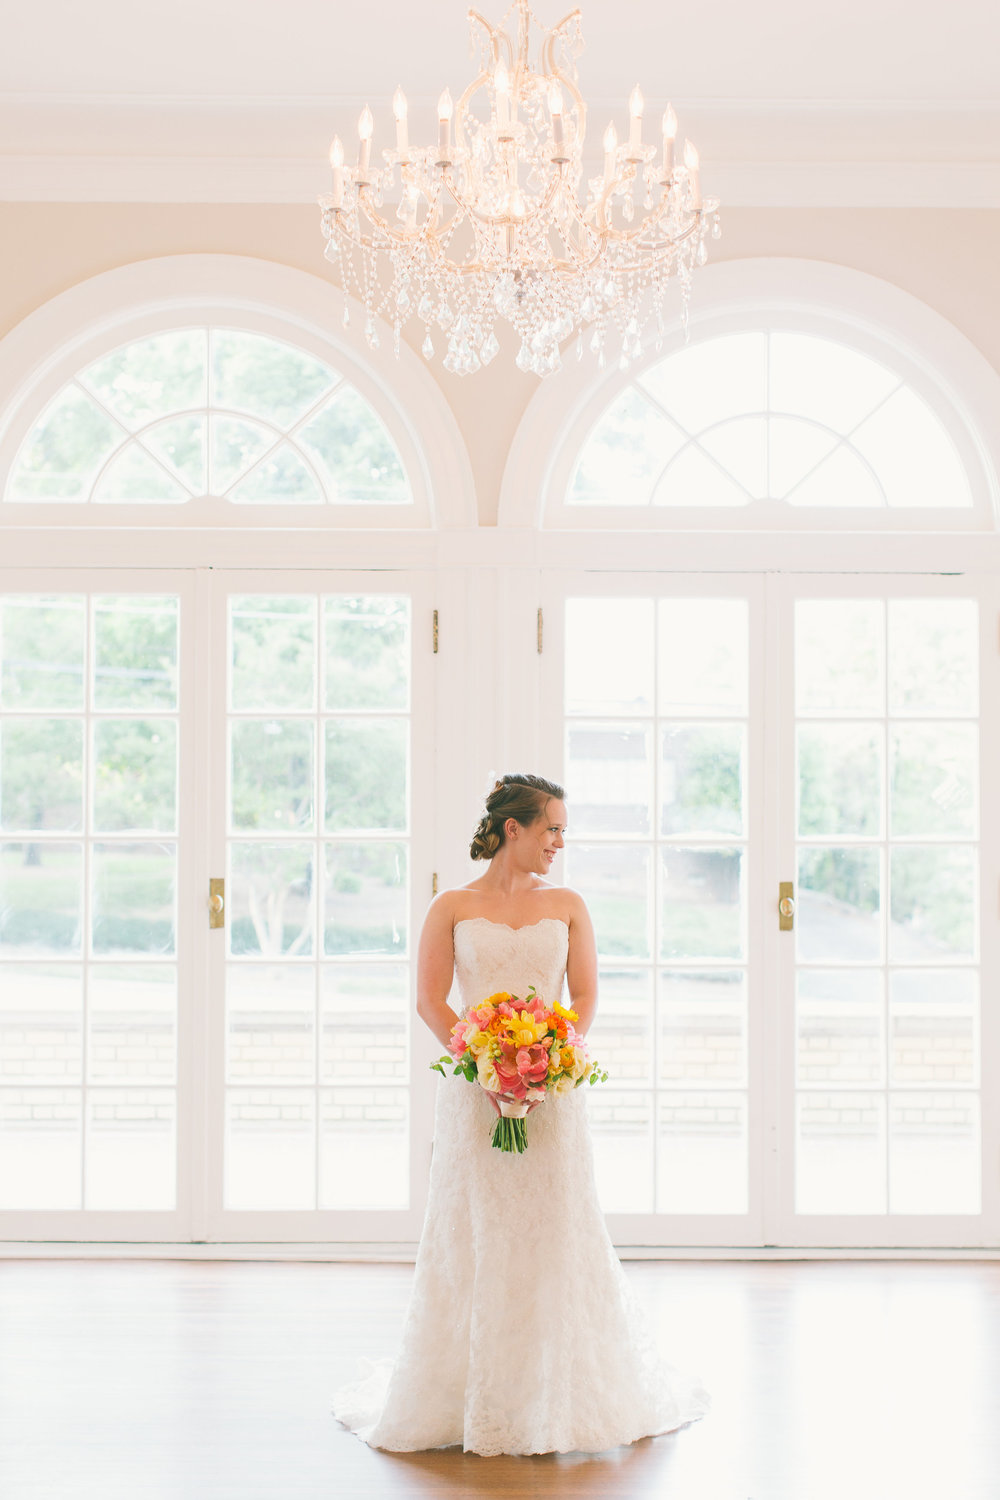 View More: http://laurenrosenauphoto.pass.us/taylorandkyle